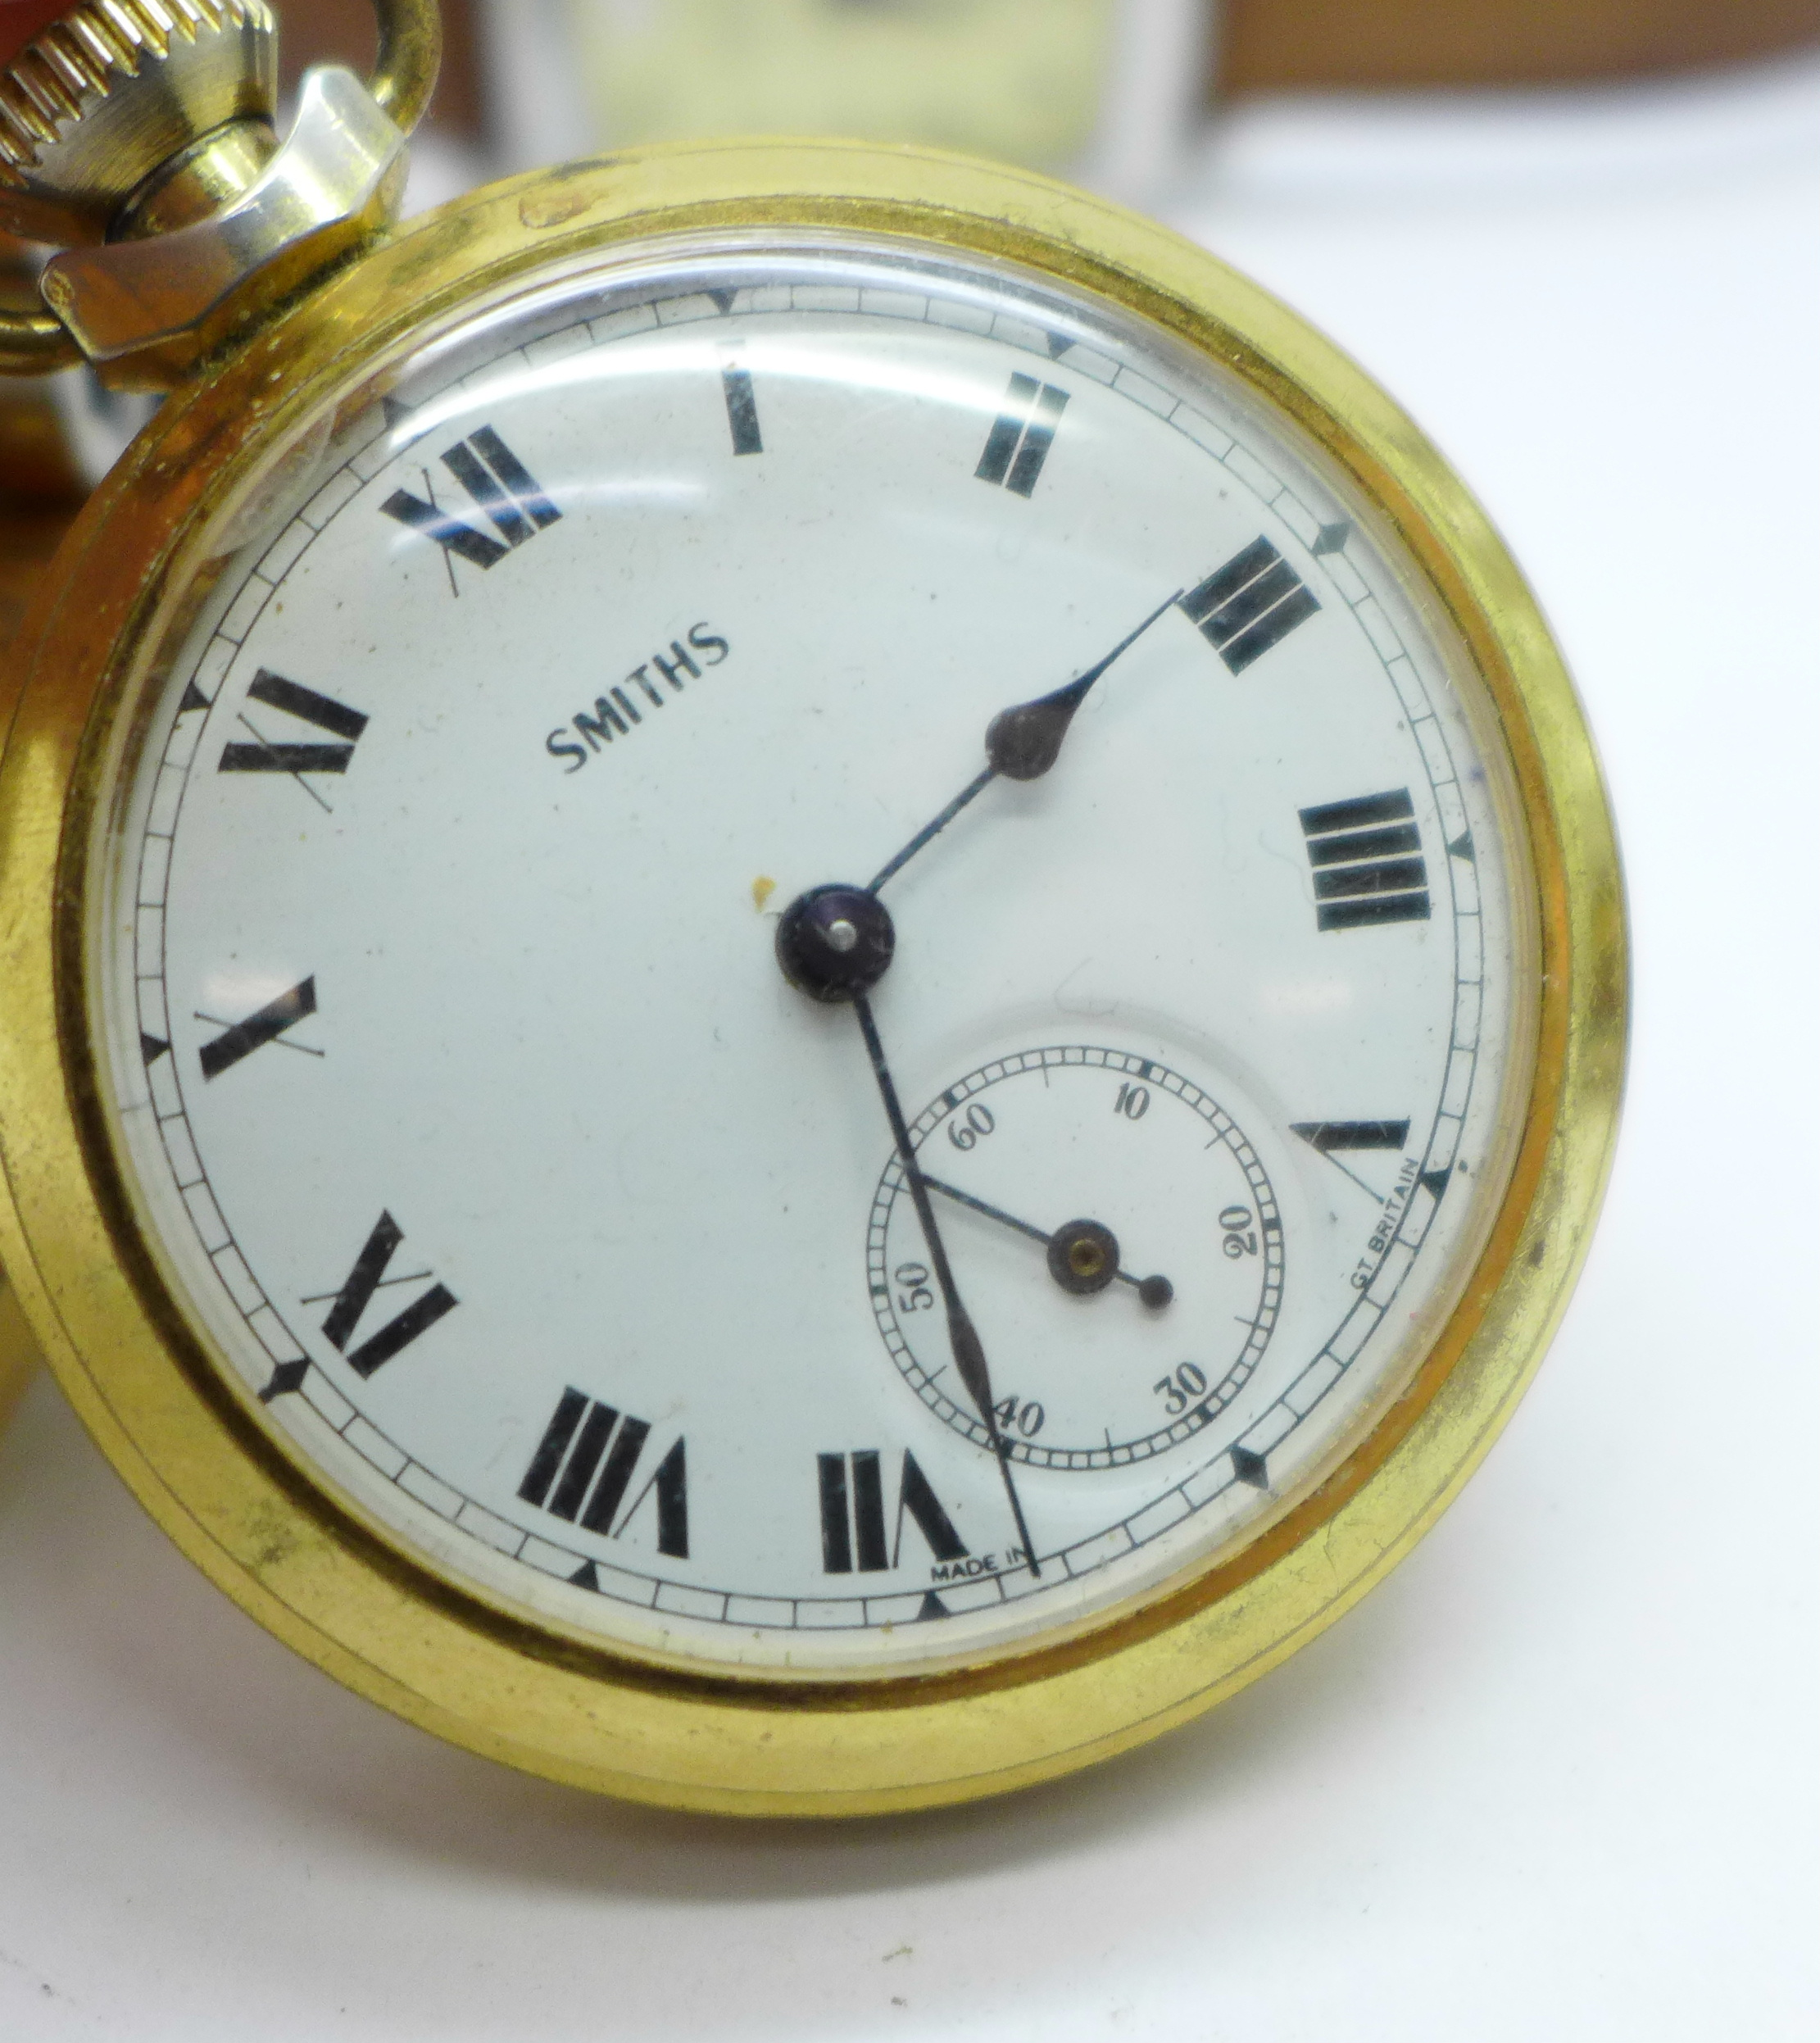 A collection of watches and a pocket watch including Seiko, Avia, Citizen, Emporio Armani and Smiths - Image 5 of 5